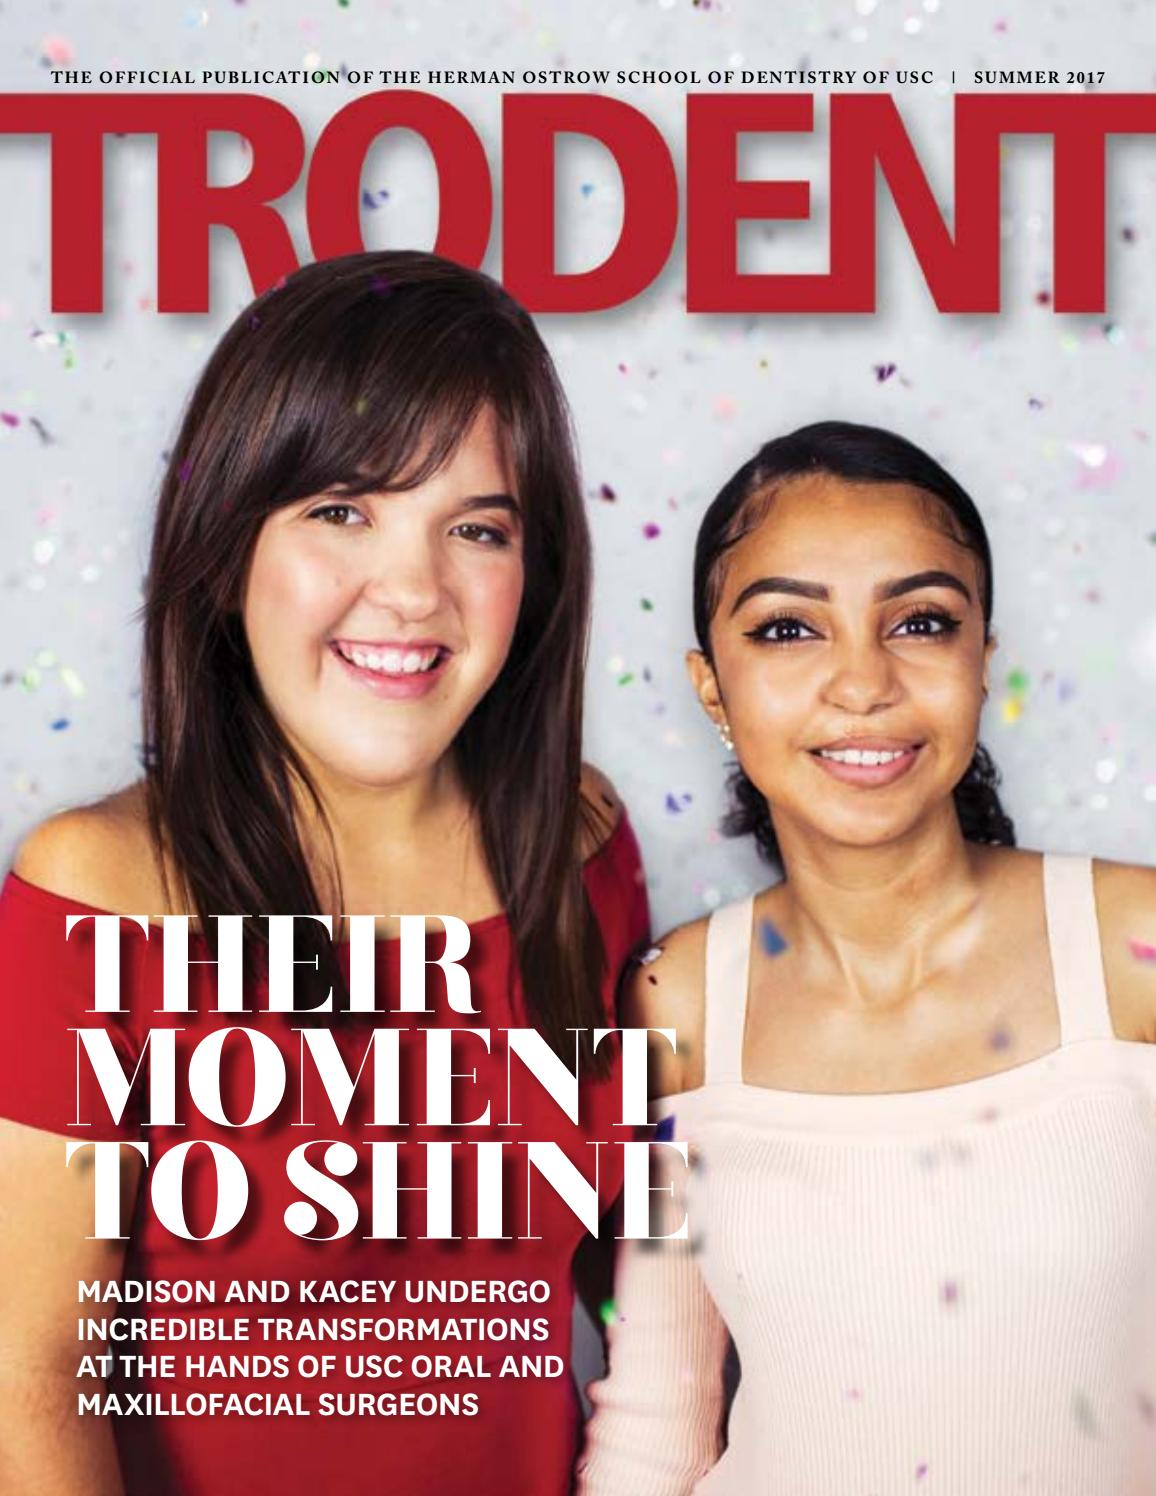 TroDent Summer 2017 by Herman Ostrow School of Dentistry of